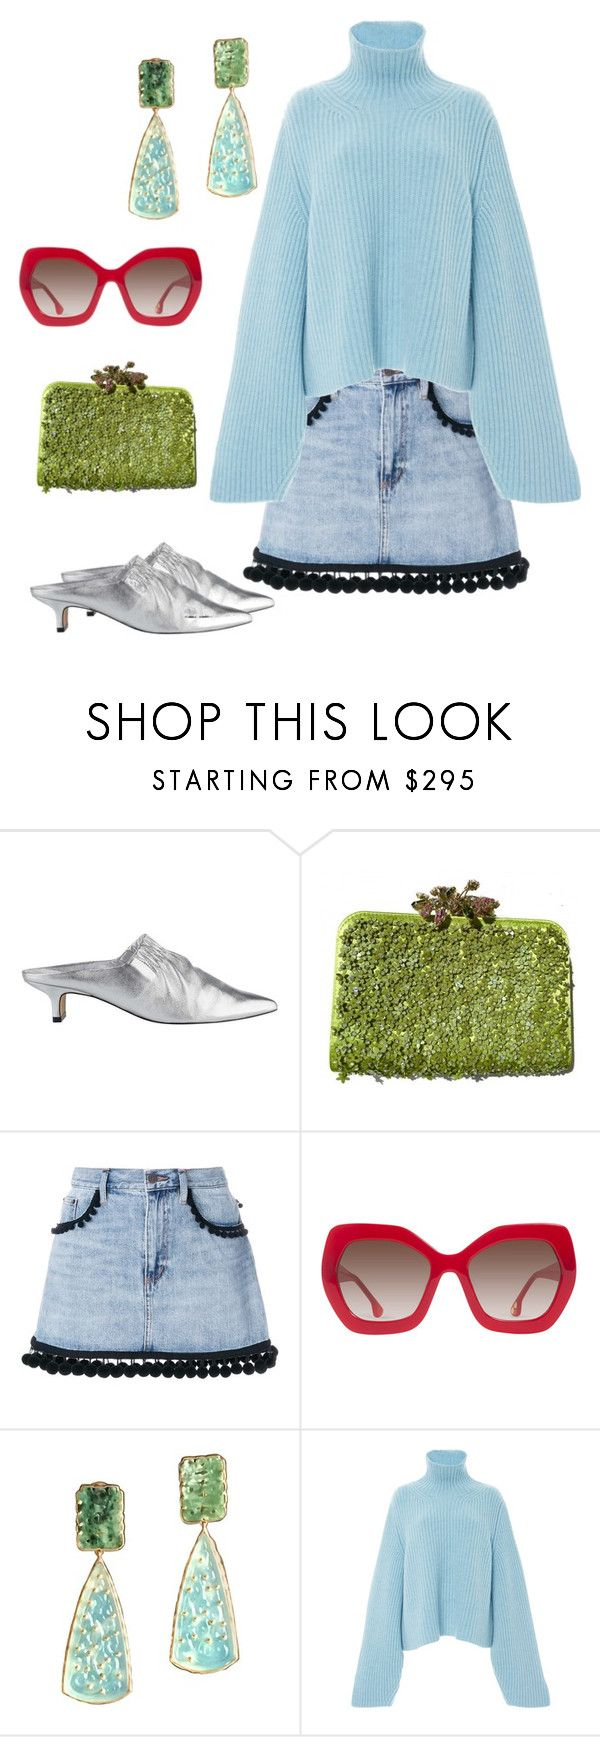 """Blue sweater"" by kvogele on Polyvore featuring Sigerson Morrison, Valentino, Marc Jacobs, Alice + Olivia, Giulia Colussi and Khaite"